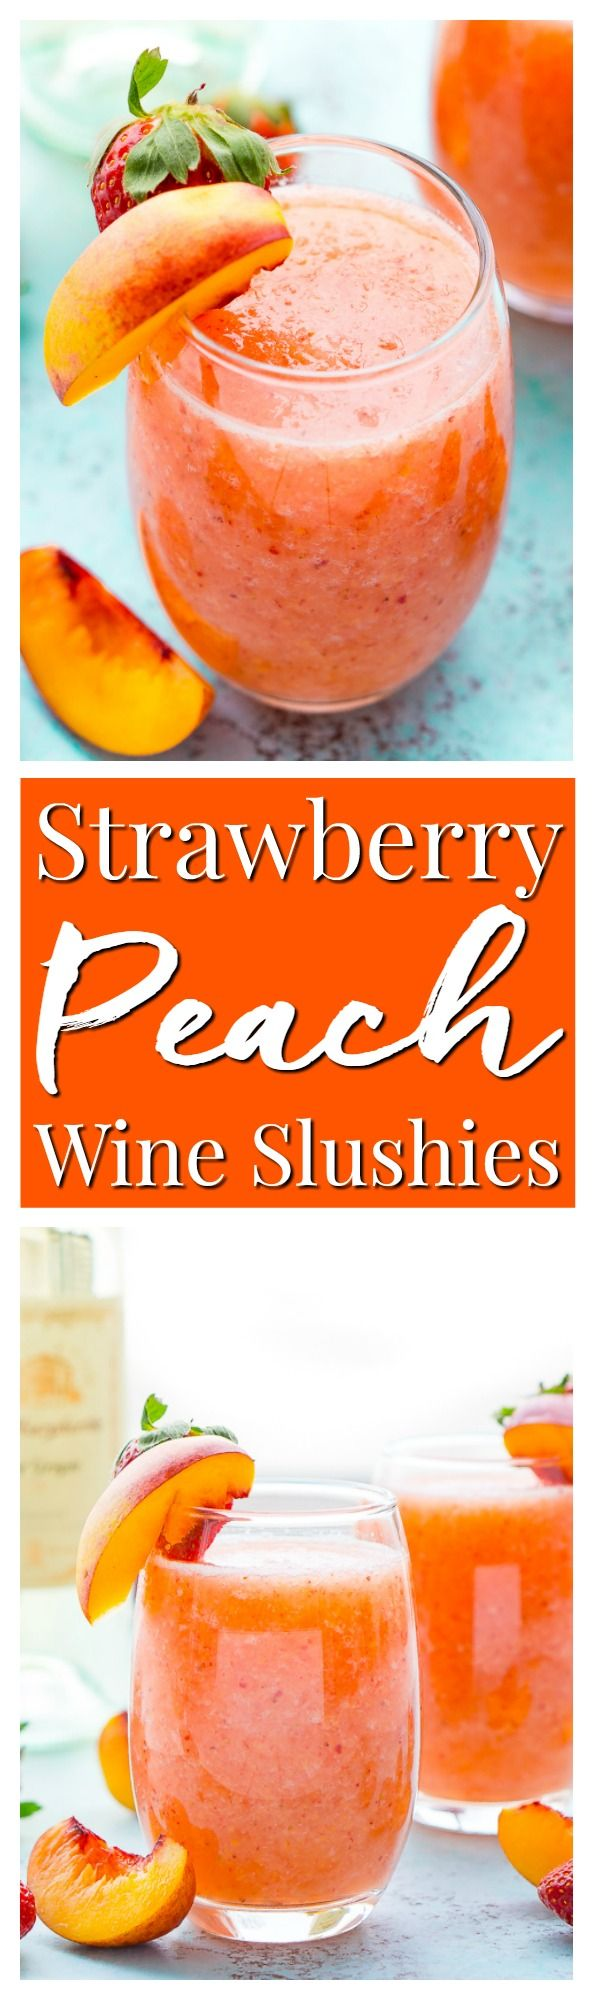 Strawberry Peach Wine Slushies are made with just a few ingredients and a blender. Mix them up for a night with the girls or a summer day by the pool! via @sugarandsoulco #summeralcoholicdrinks